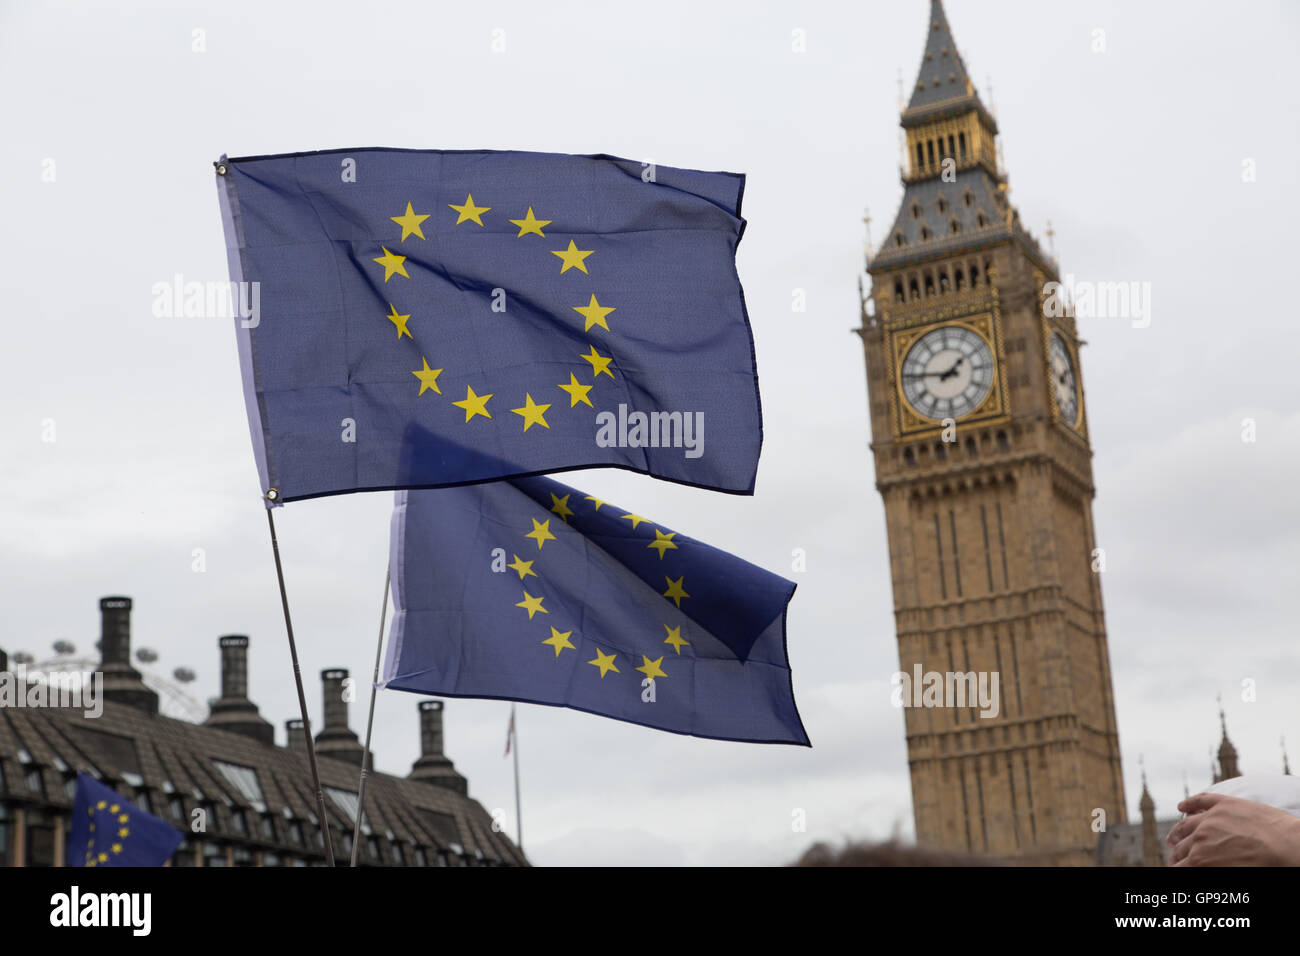 London, UK. 3rd September, 2016.  thousands march in cities across the UK protesting against Brexit. London's demonstration - Stock Photo